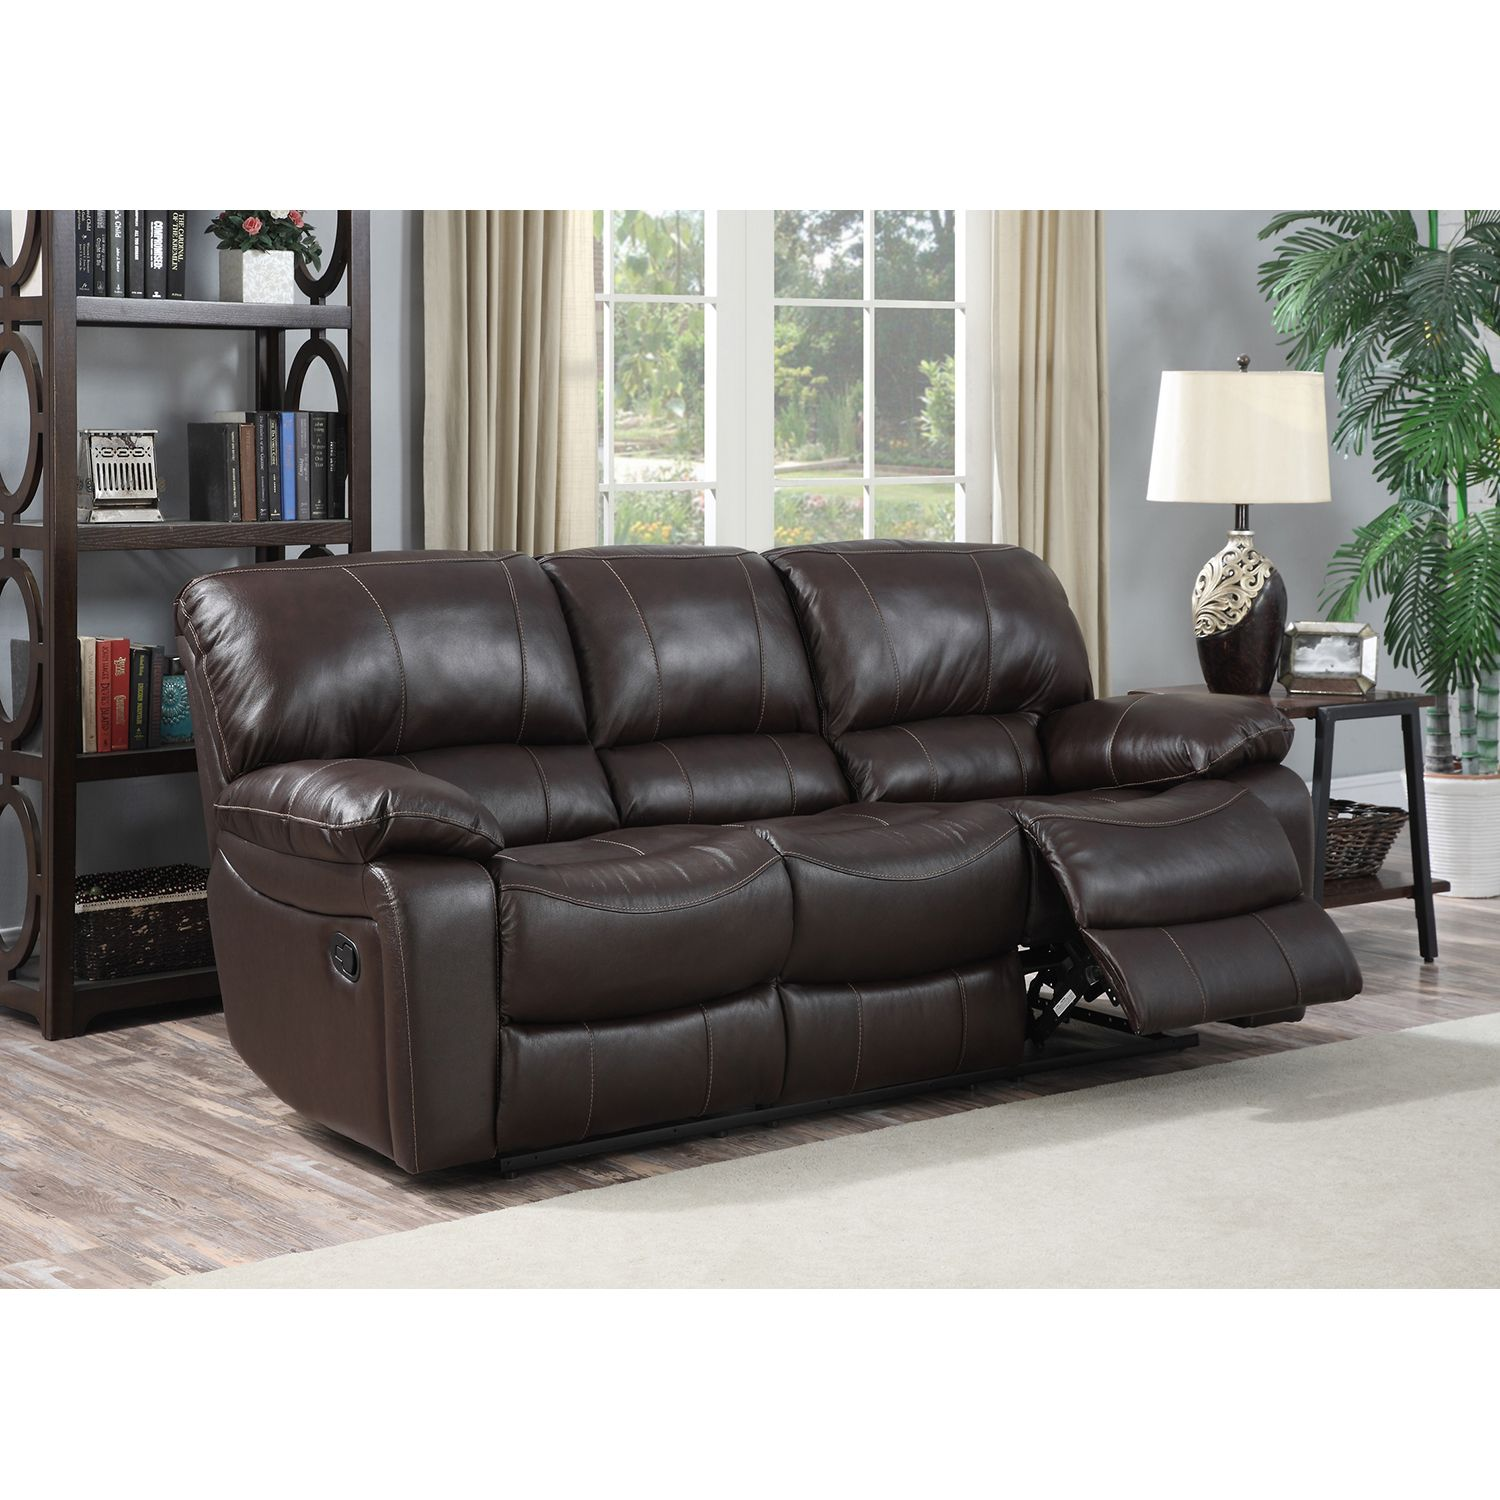 Magnificent sectional couches for sale with wooden legs for home furniture ideas with cheap sectional couches for sale